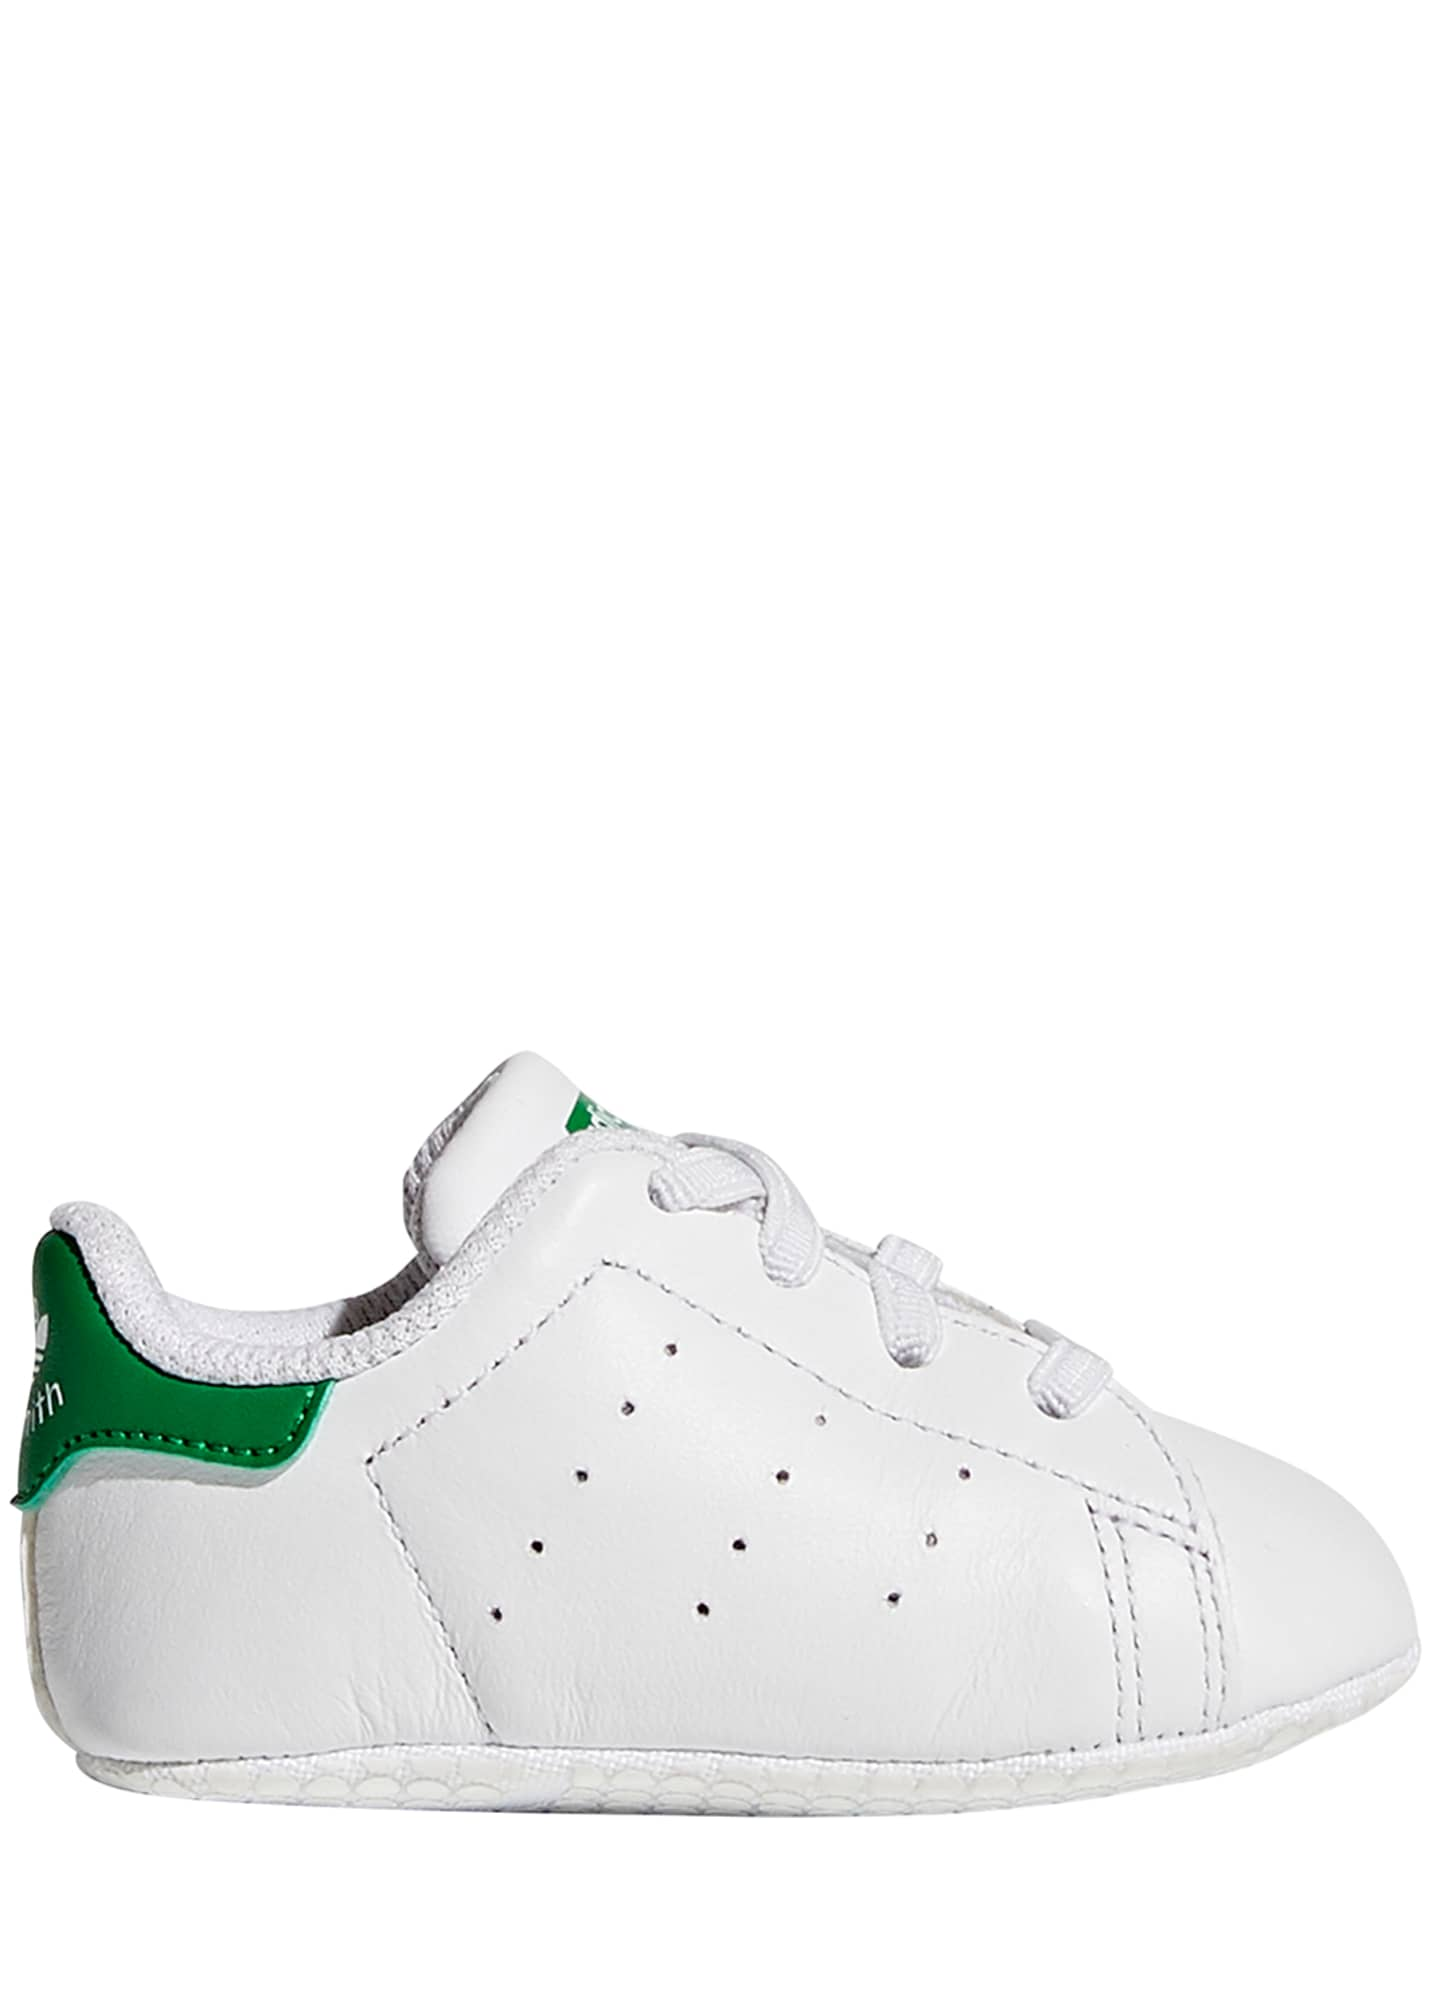 Adidas Kids' Stan Smith Classic Crib Sneakers, Baby